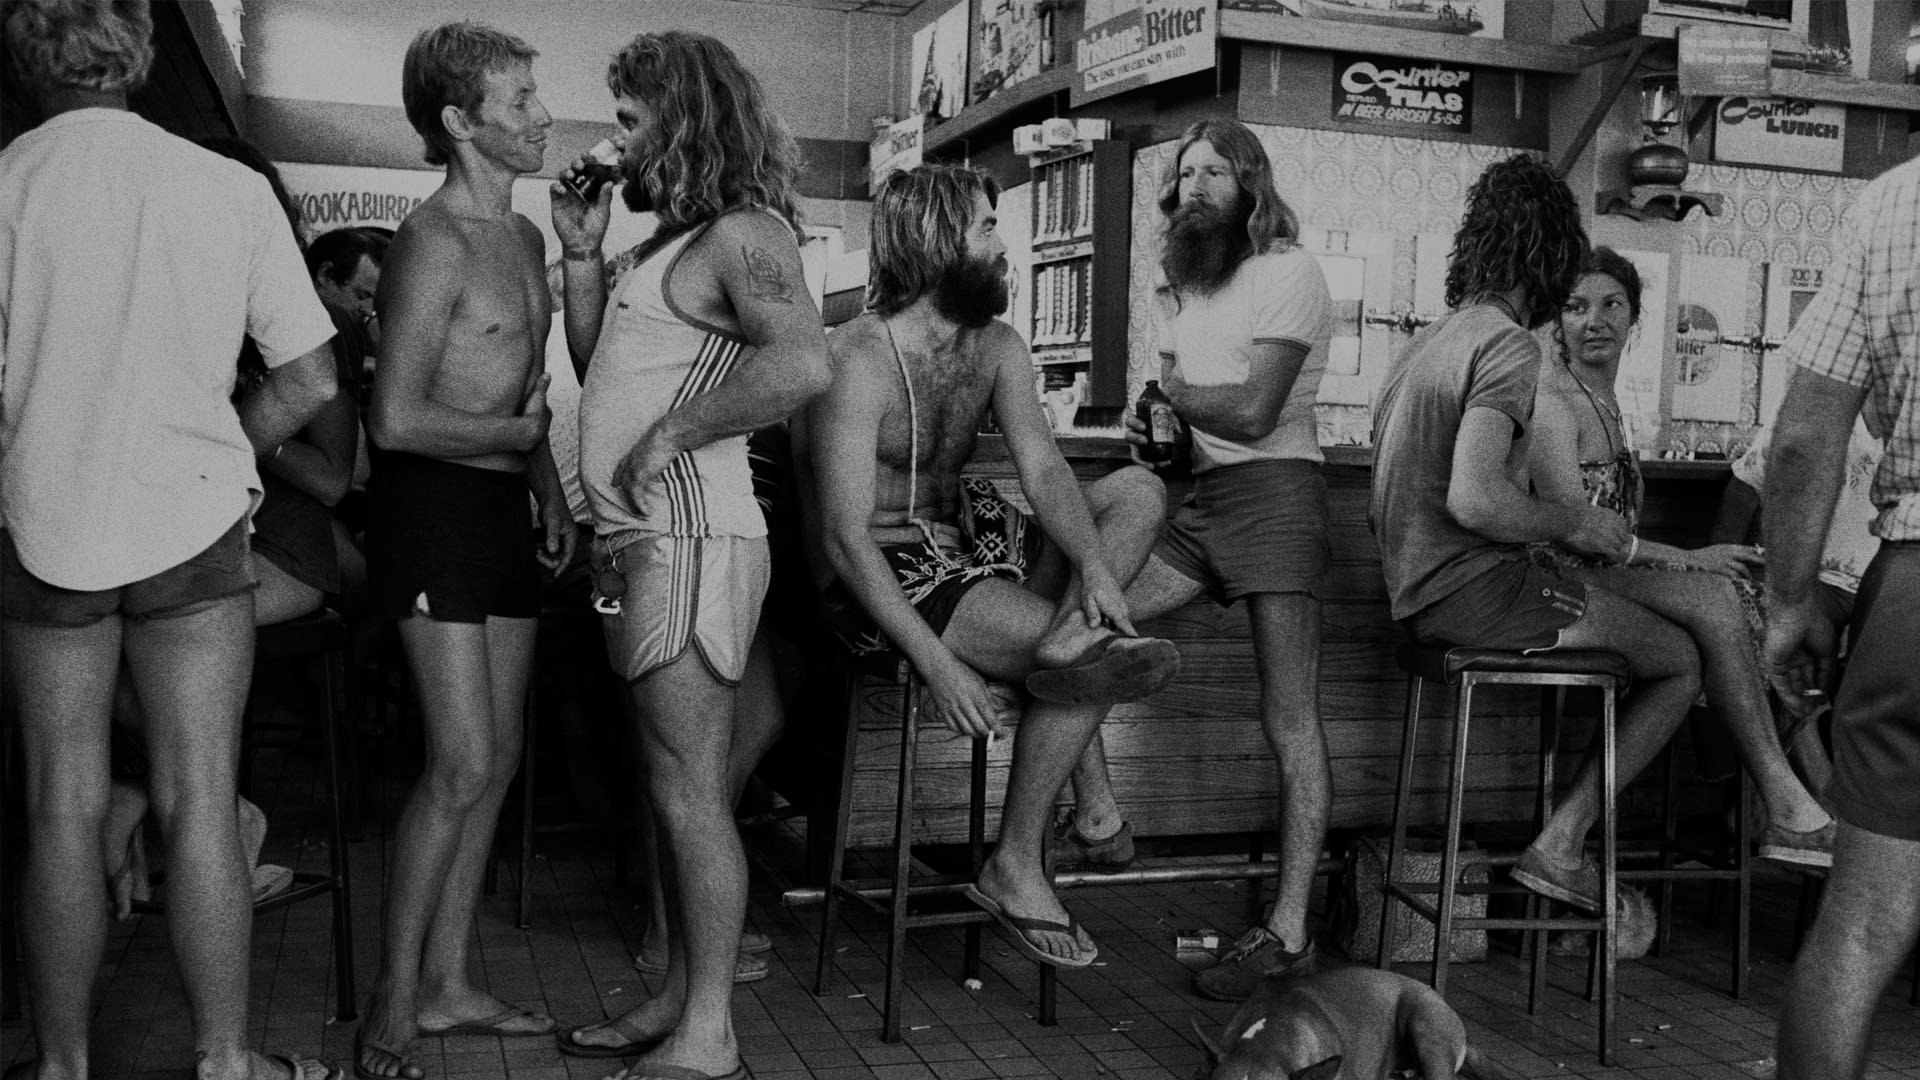 Old photo of men hanging out in an Australian shop